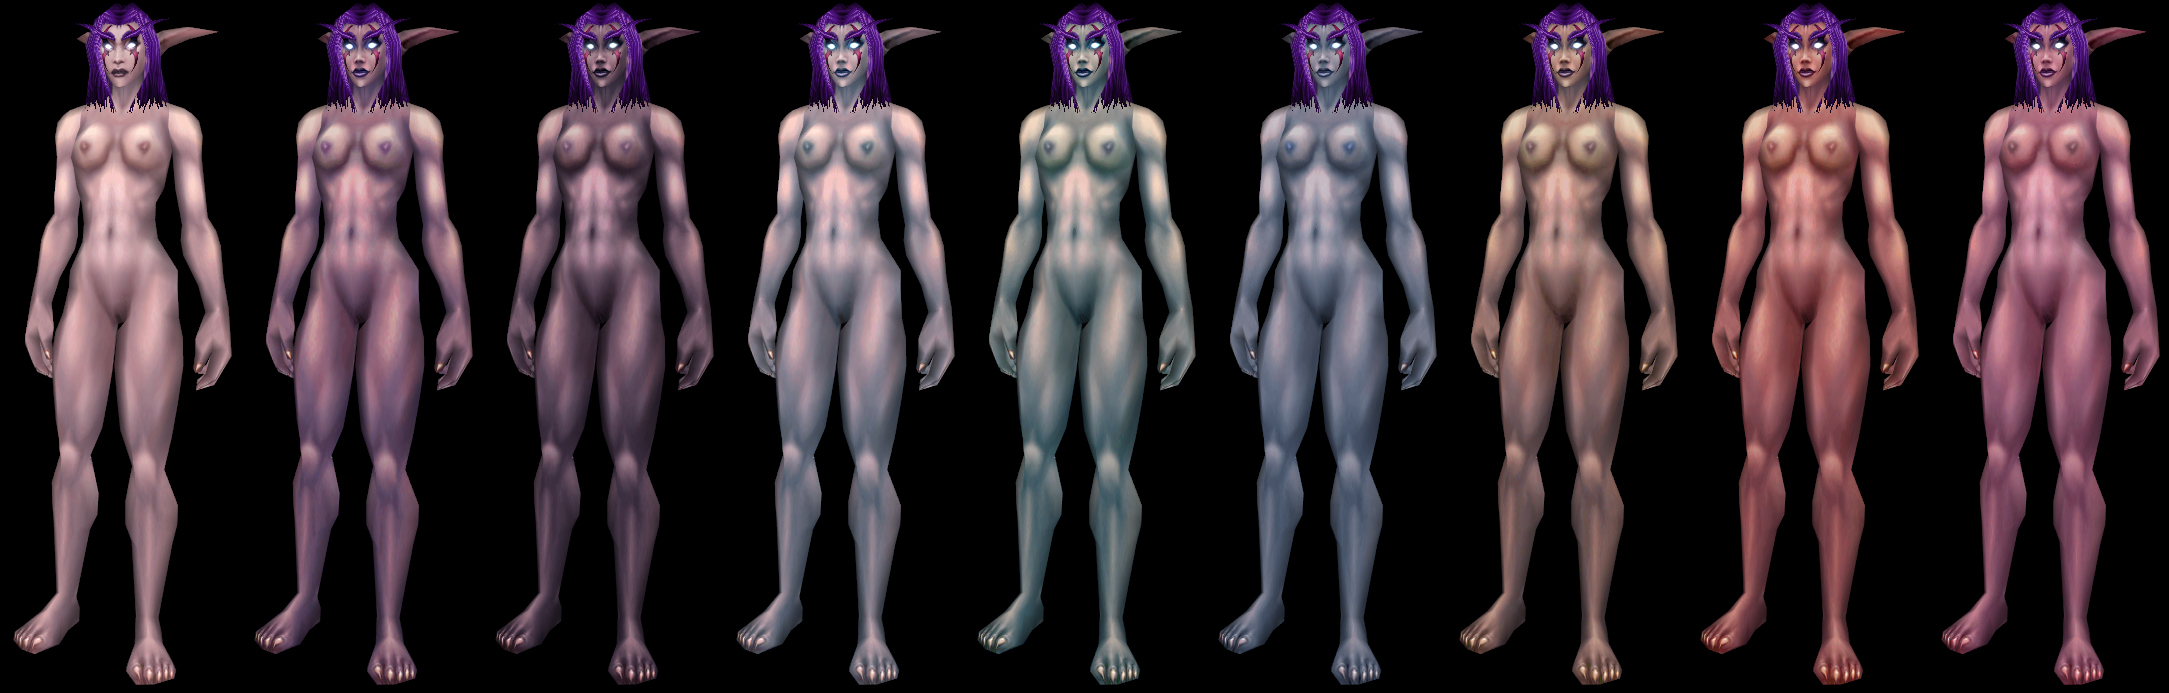 Night elves nude mod sex images